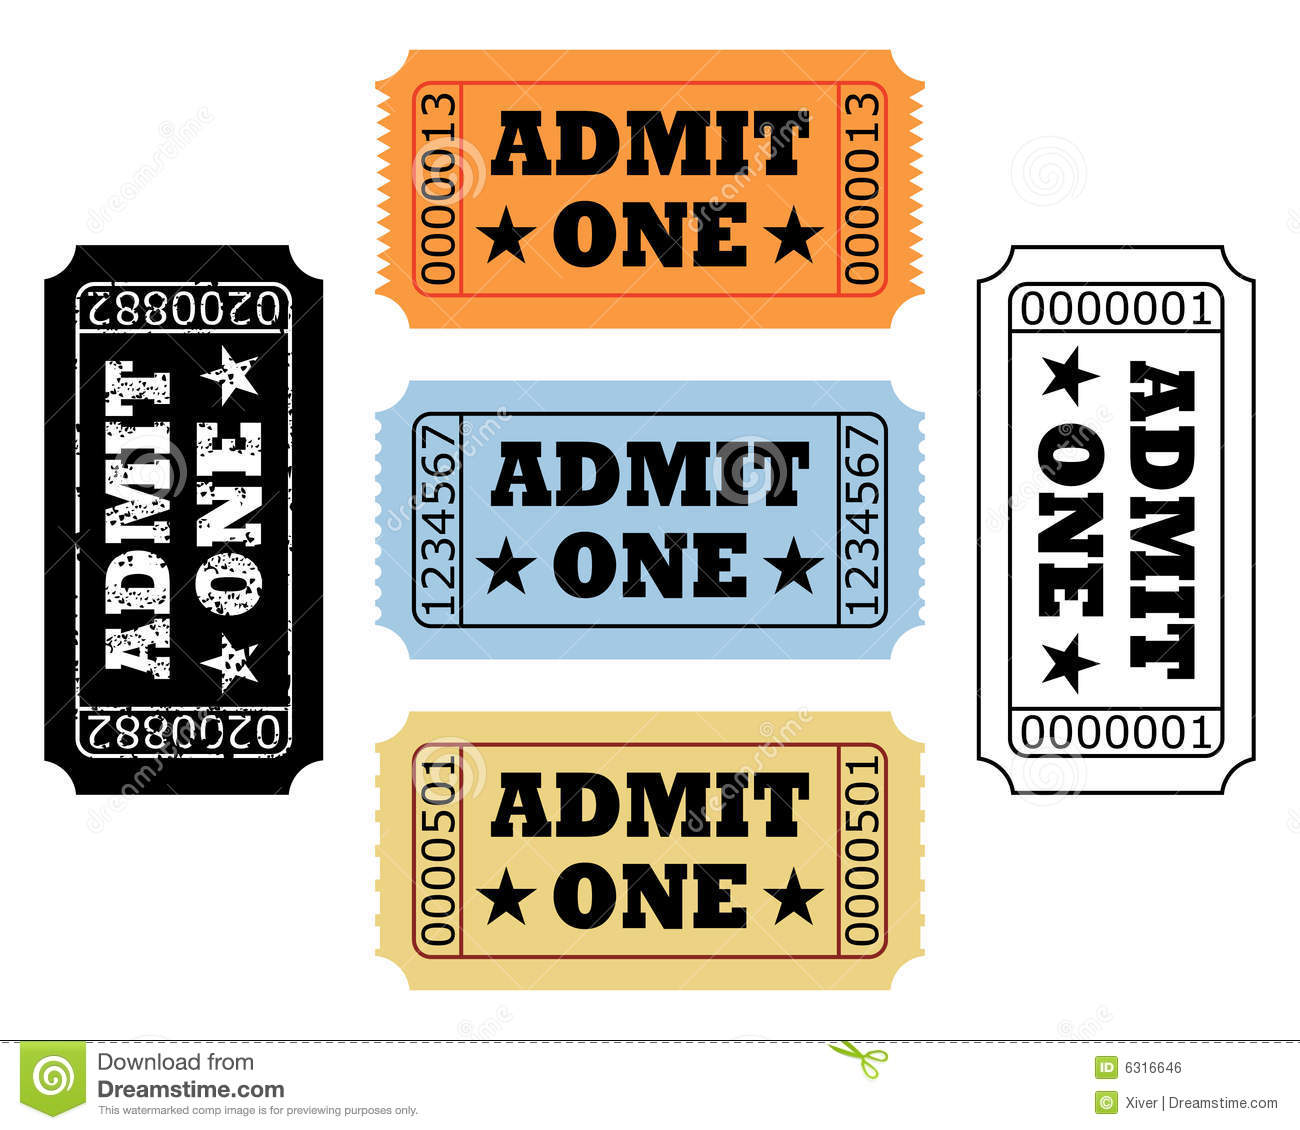 Movie Tickets Royalty Free Stock Image - Image: 6316646